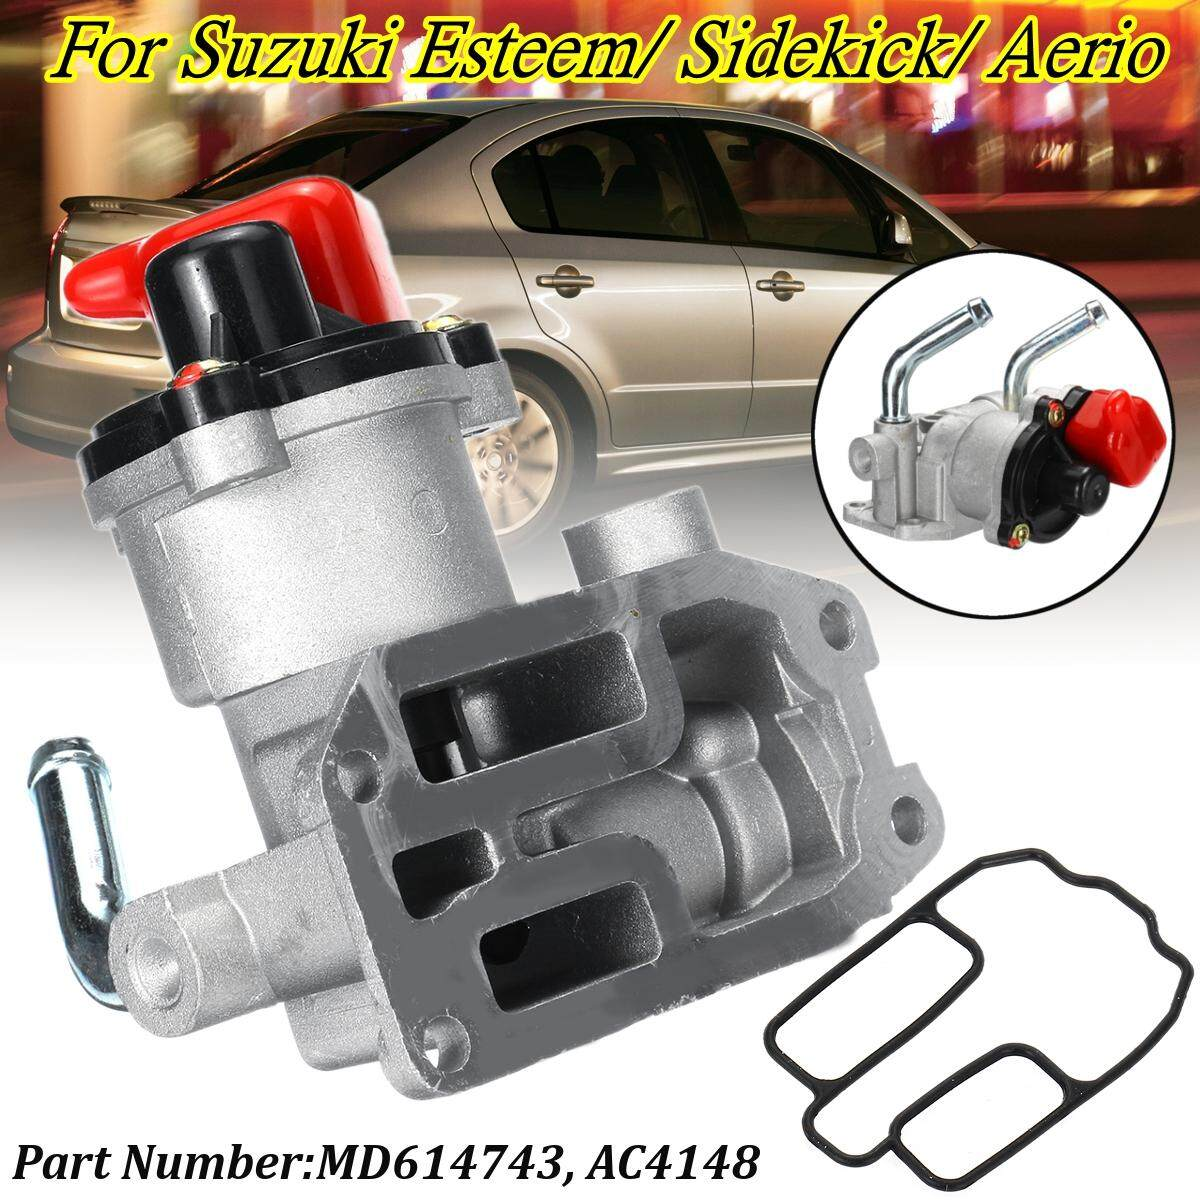 Intake Manifold for sale - Car Air Intake online brands, prices